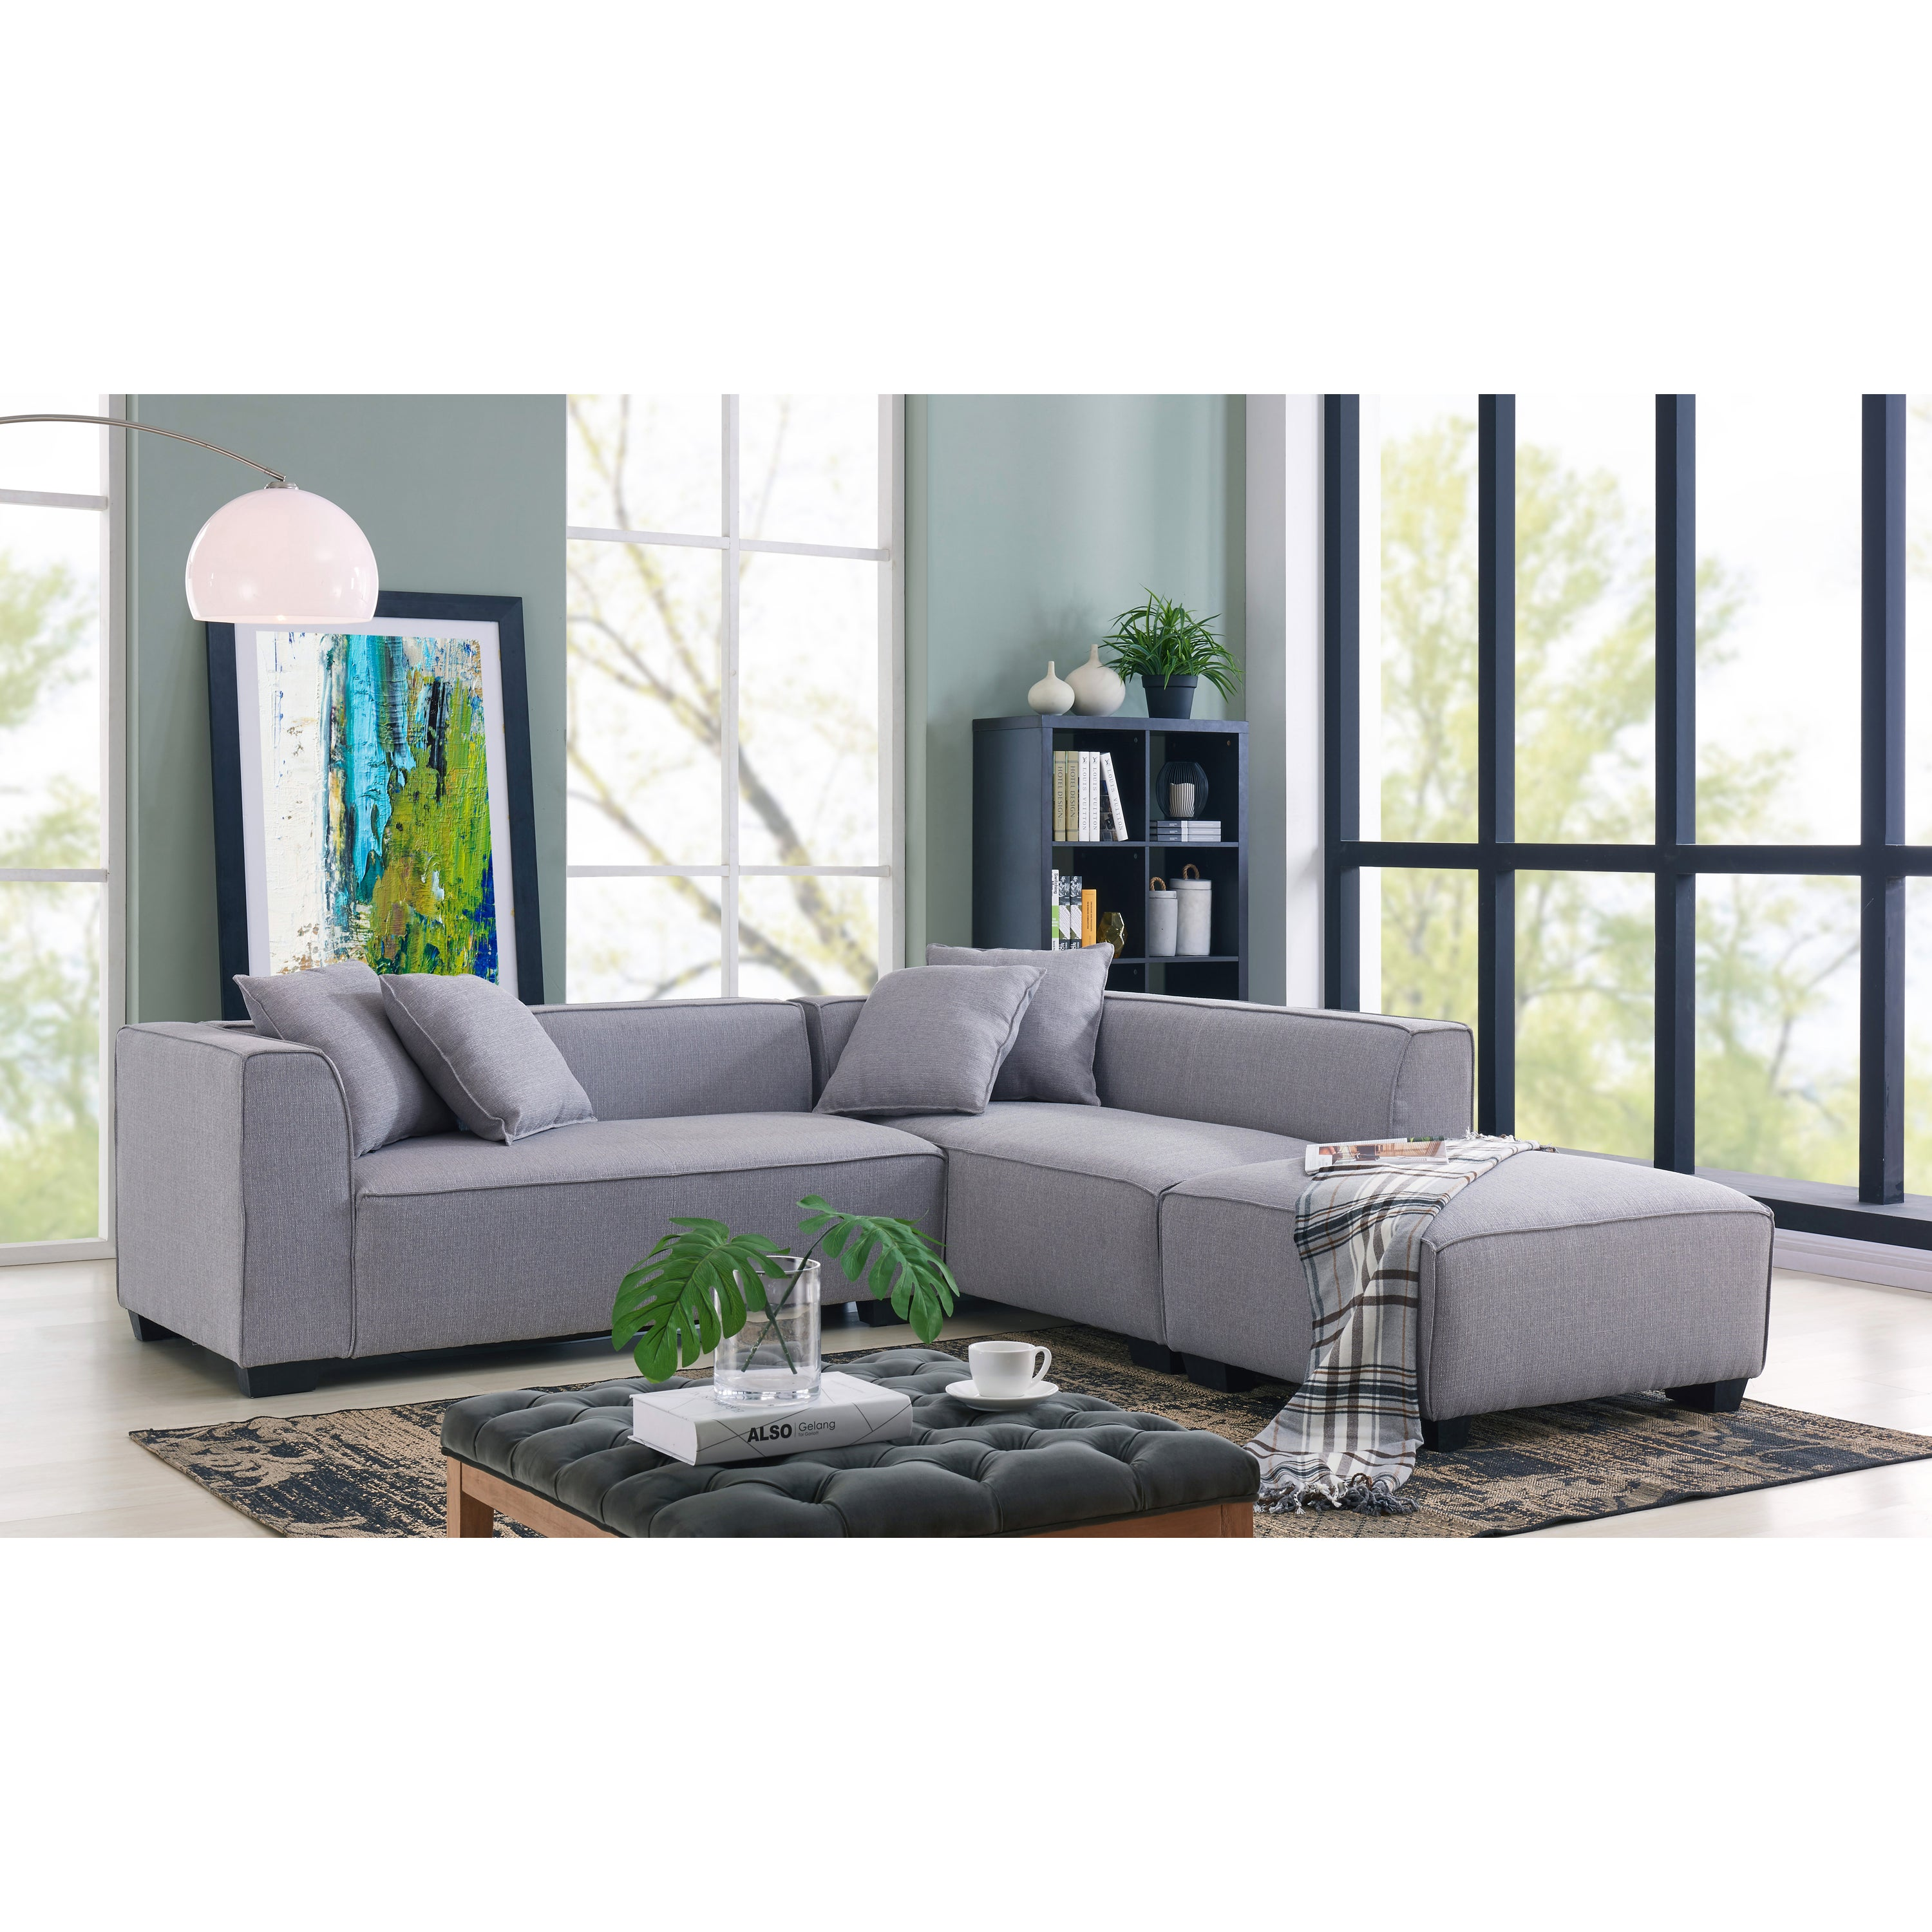 Shop handy living phoenix grey sectional sofa with ottoman on sale free shipping today overstock com 18058314